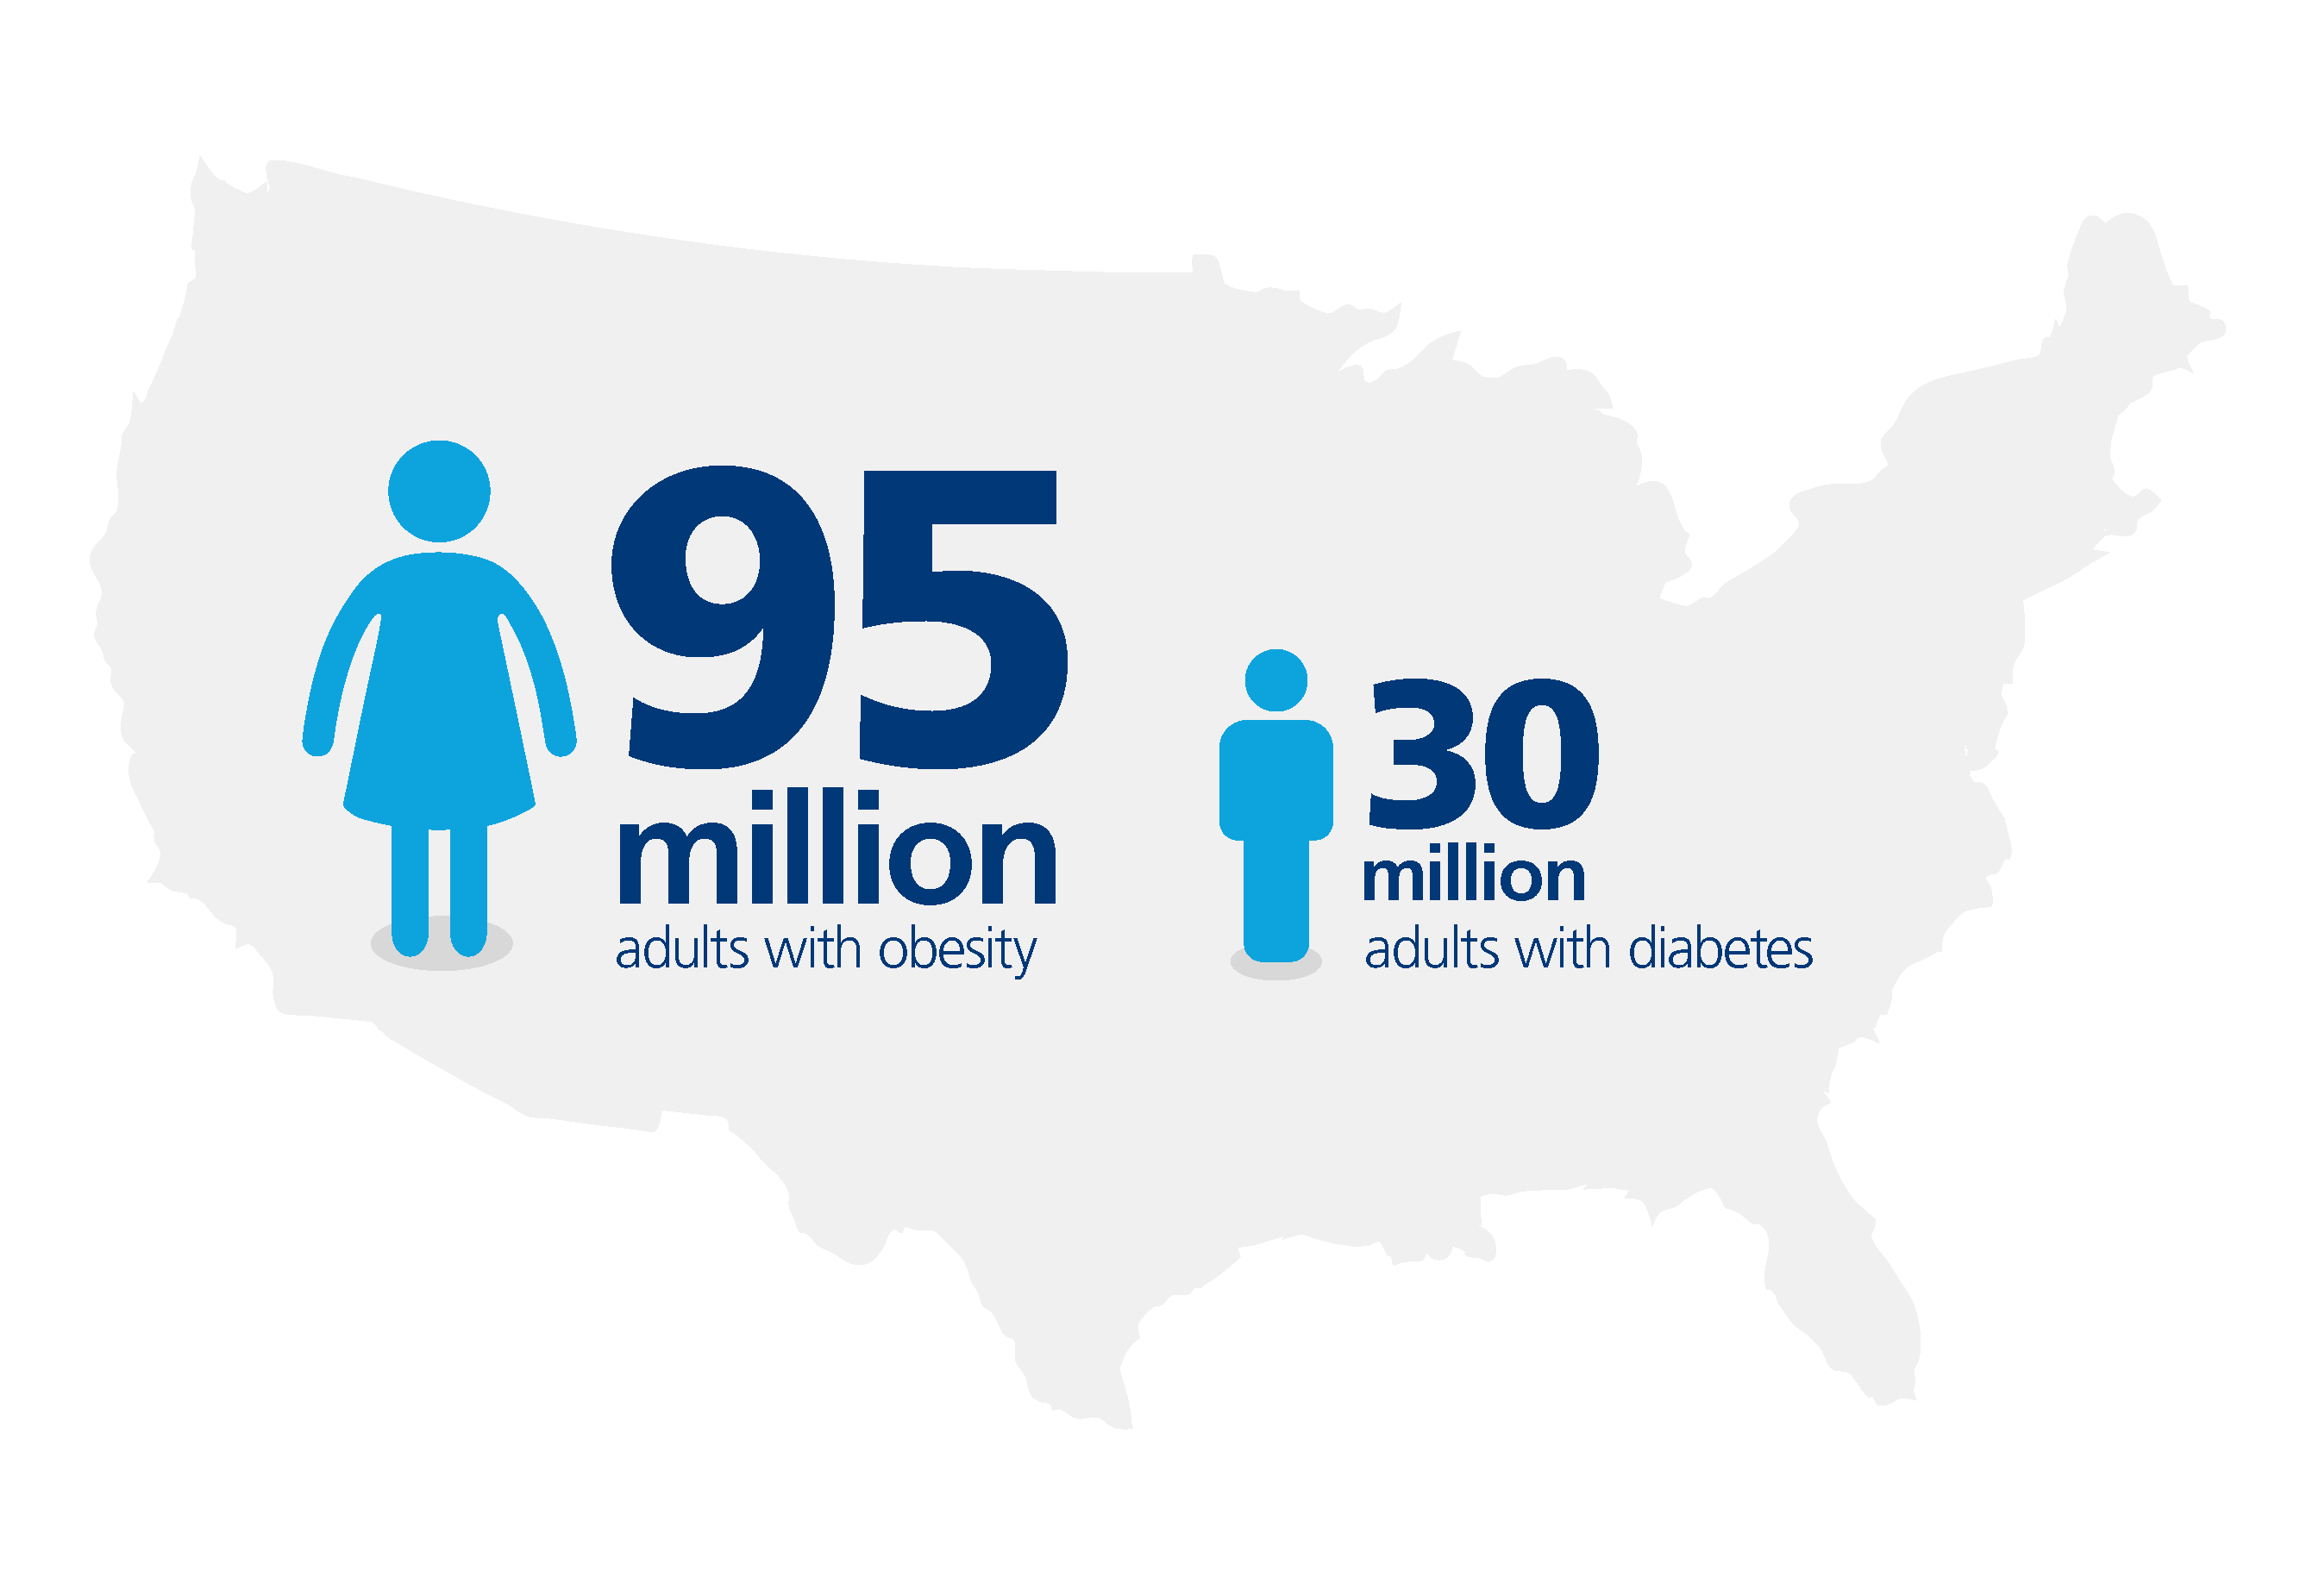 Obesity is a chronic disease affecting 95 million adults